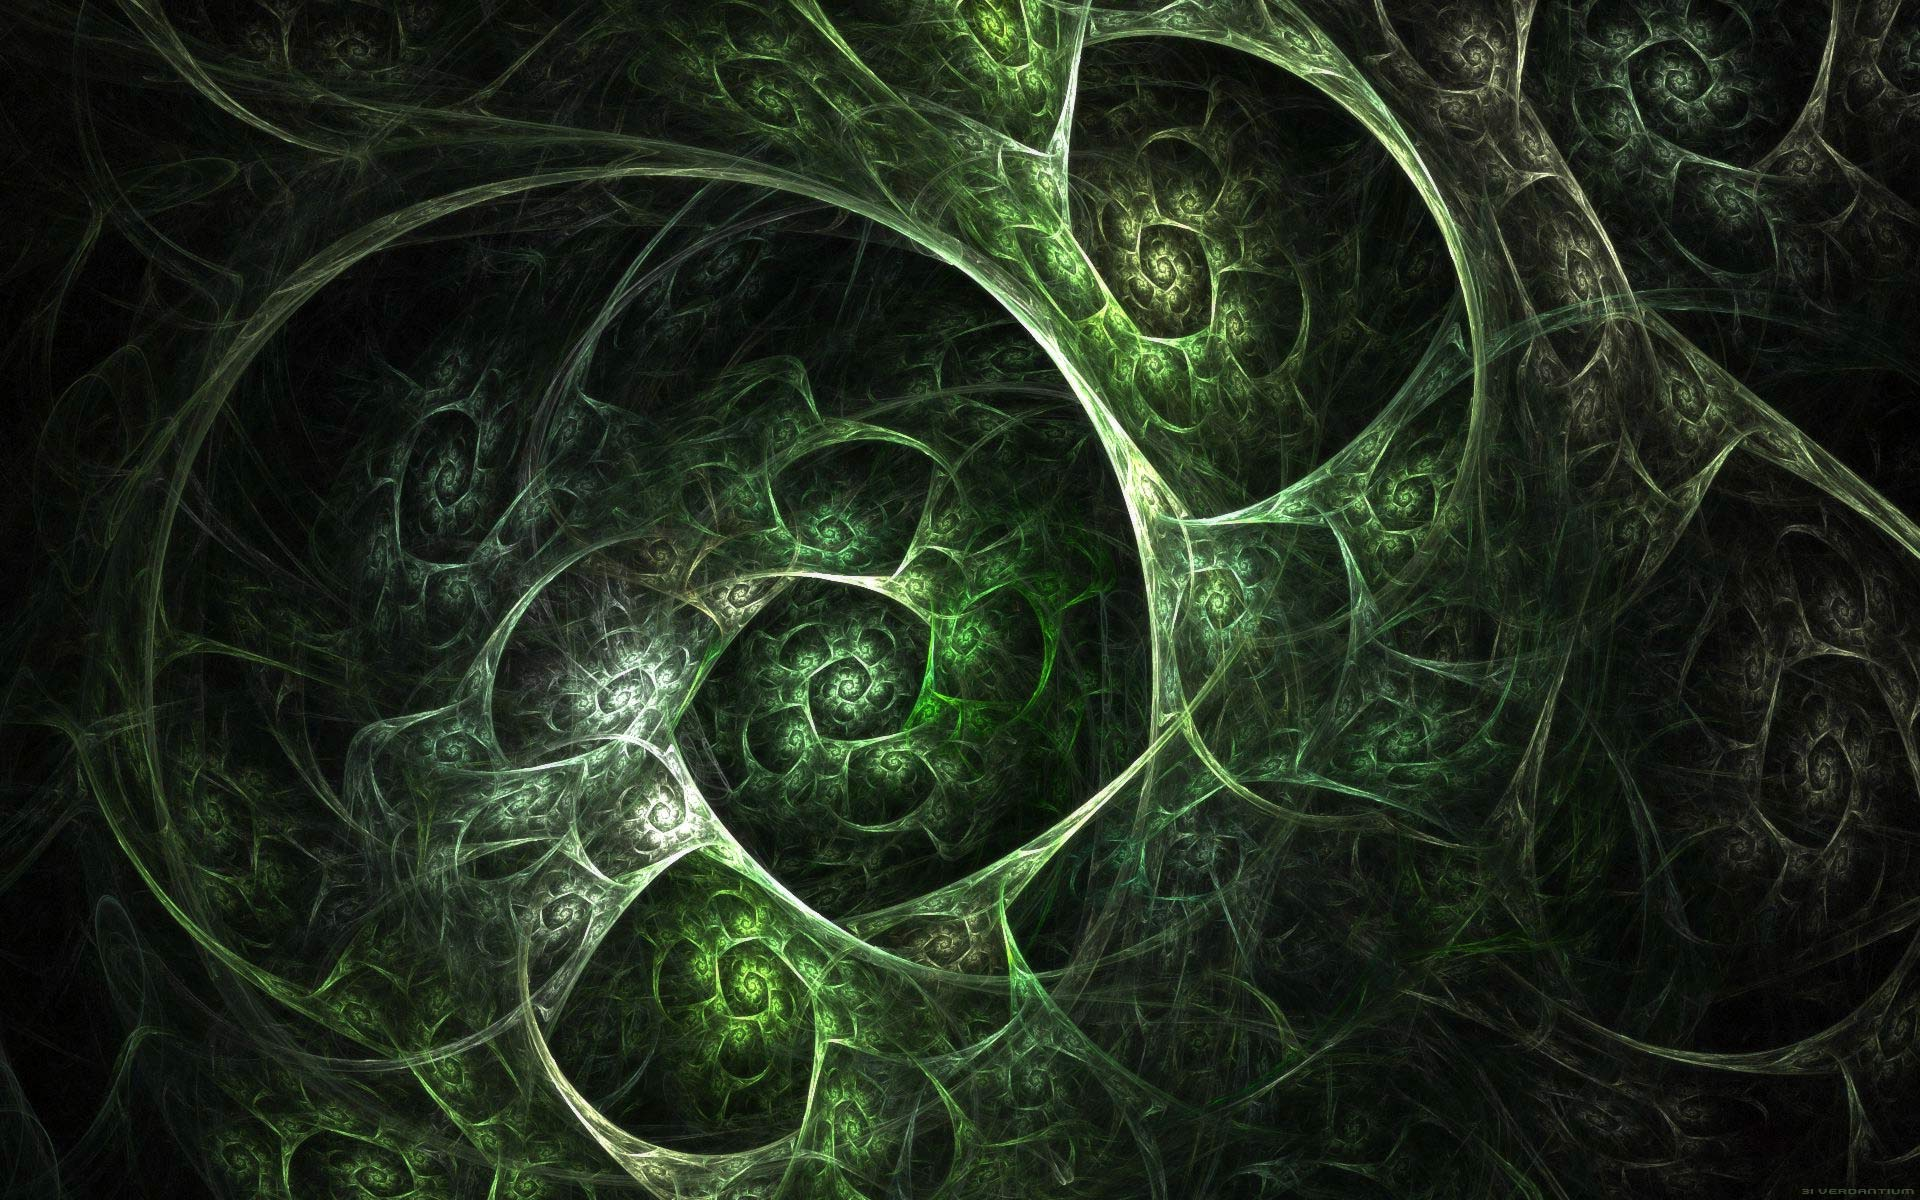 Hd Wallpapers Hd Abstract Wallpapers For Laptop Hd Black And